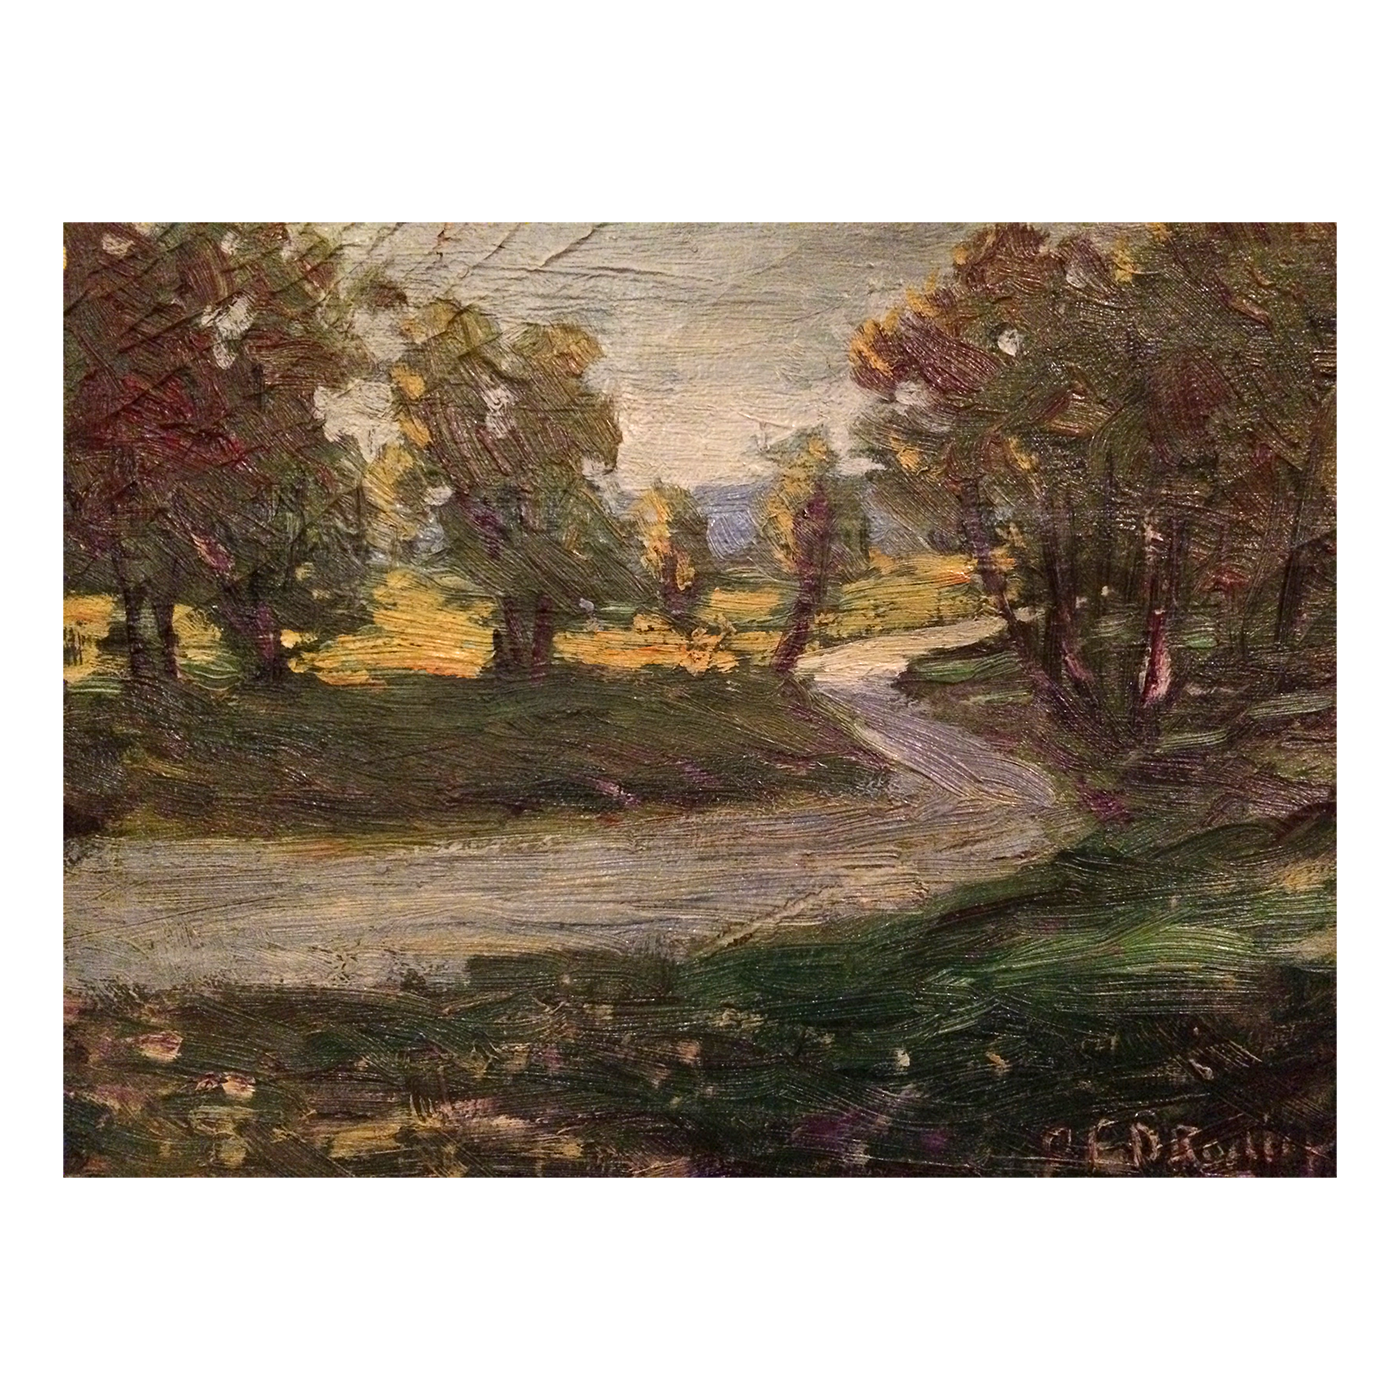 Charles E Rodick Dublin art colony artist painting of Landscape c.1915